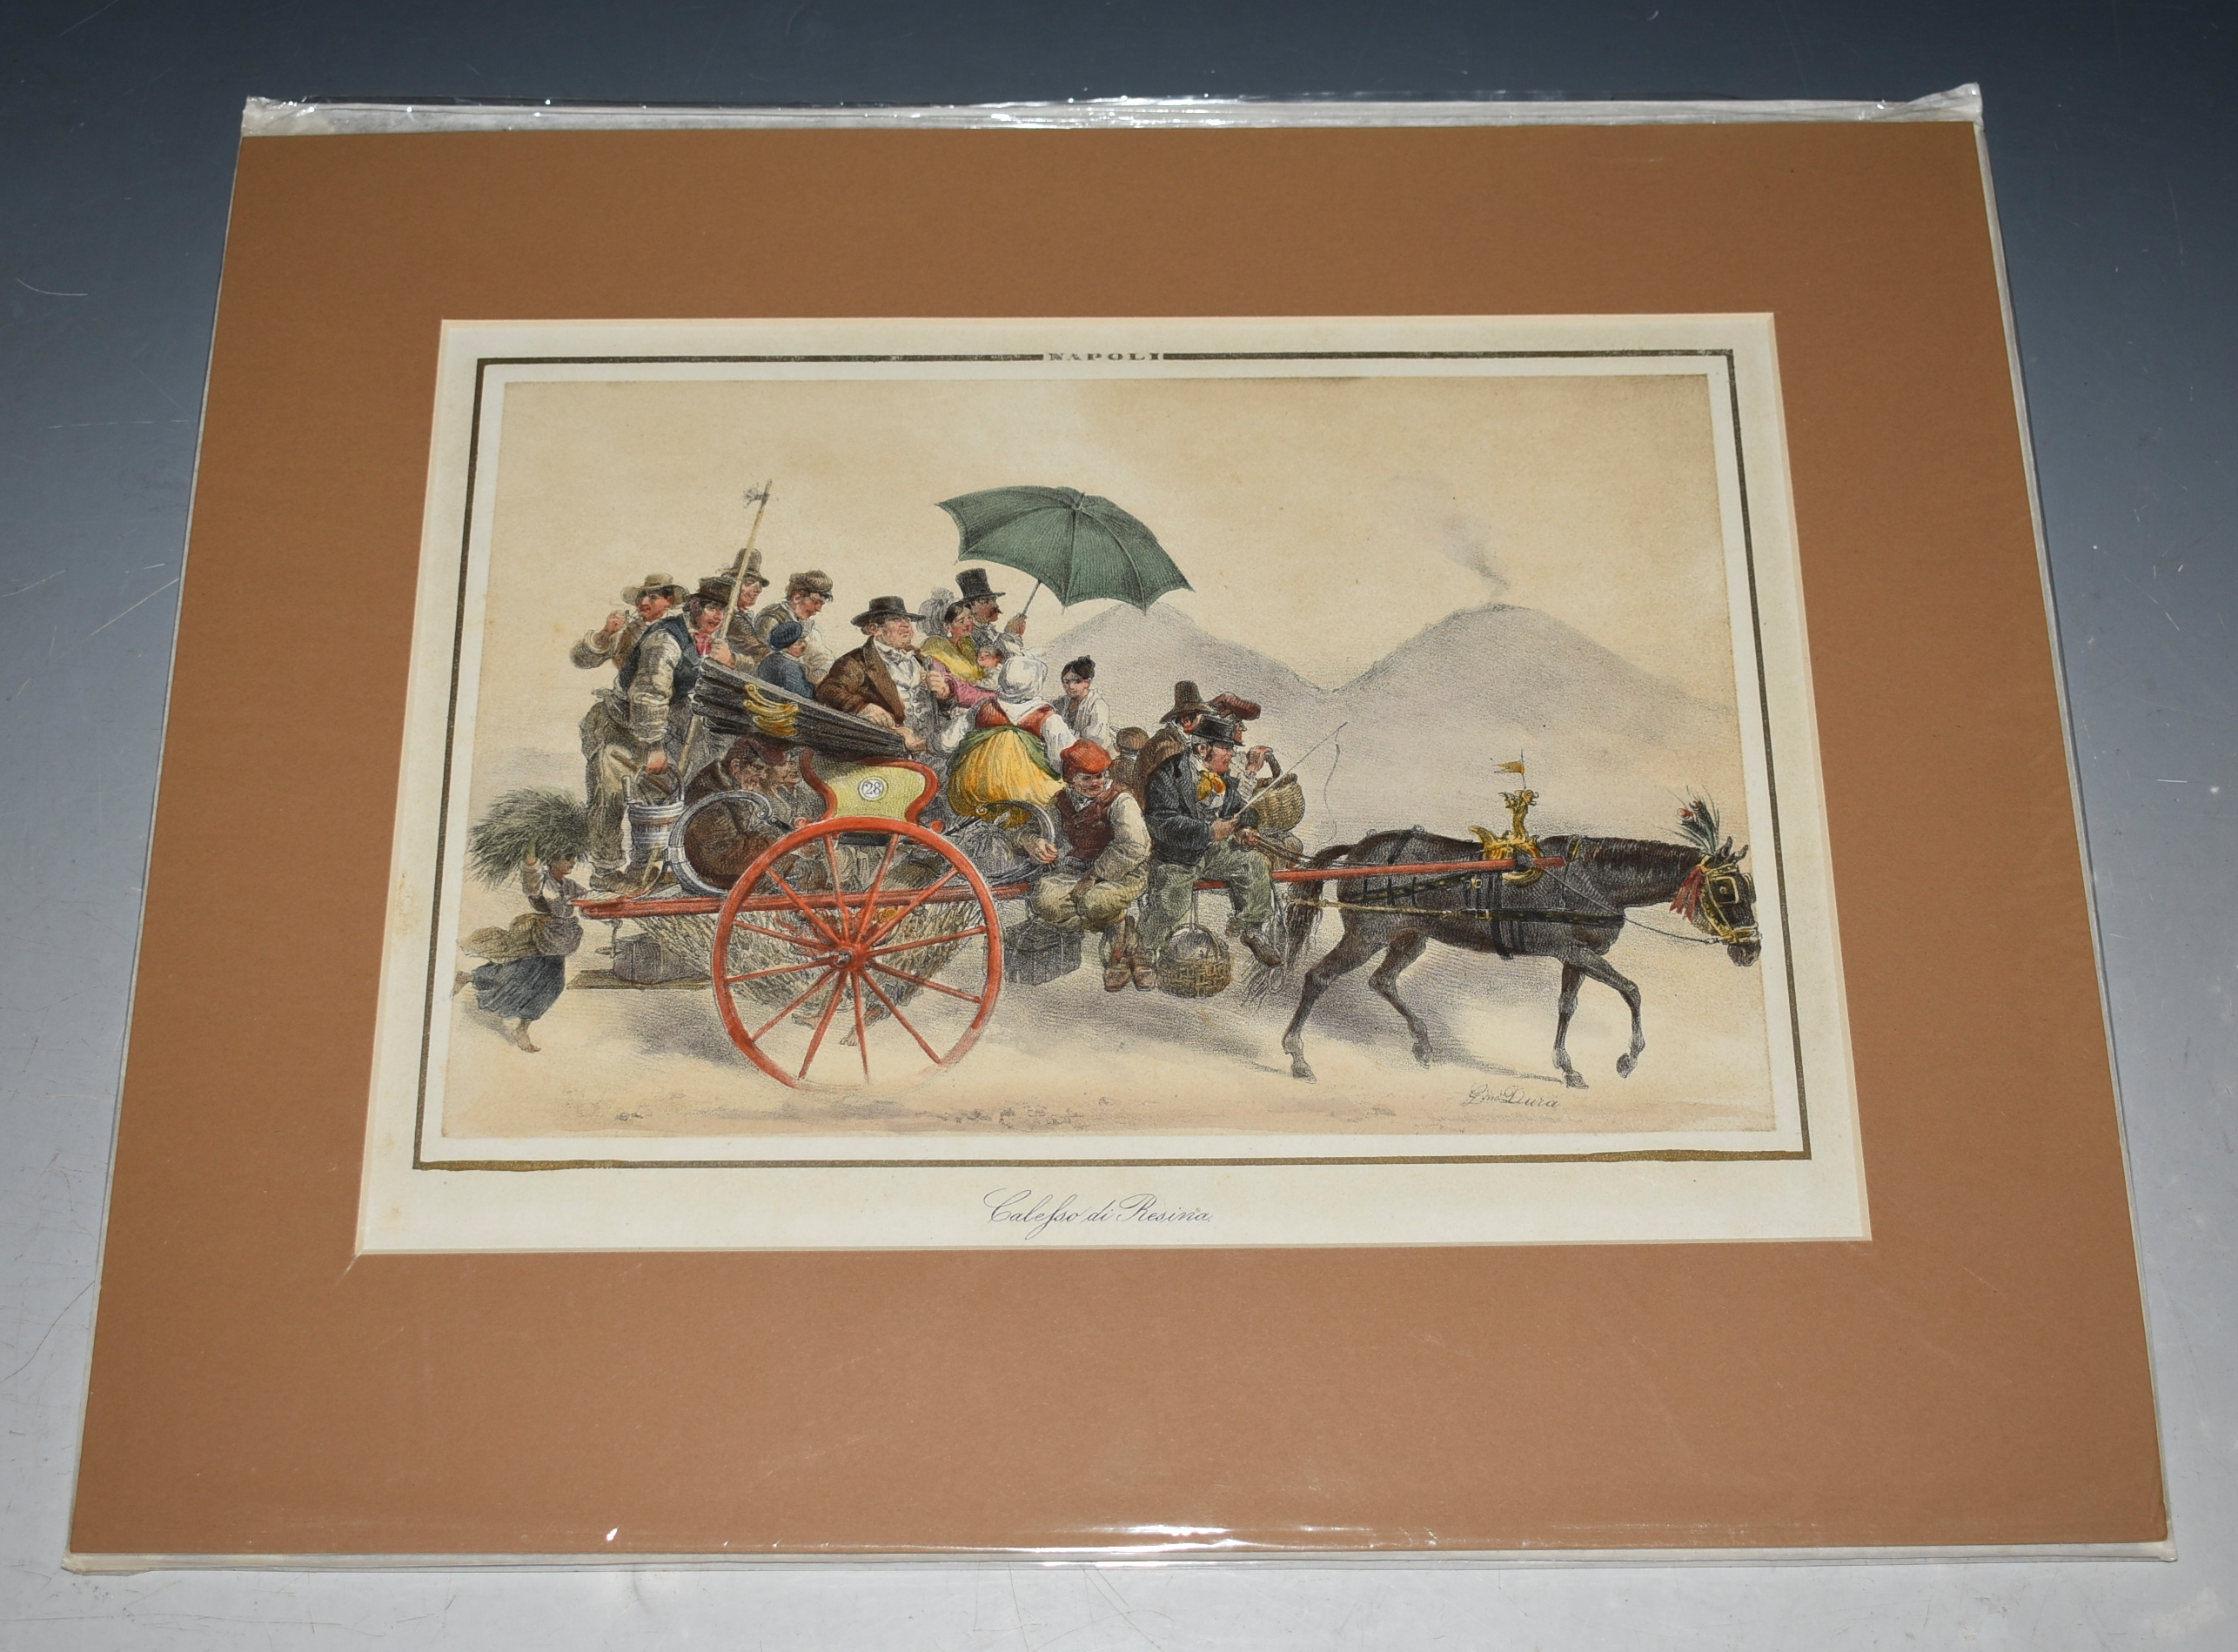 Image for Napoli Calessa di Resina Horse & carriage, With Mount Vesuvius in background. Italy Hand-coloured lithograph, from 'Raccolta di Costumi Napoletani', NEAPOLITAN COSTUME